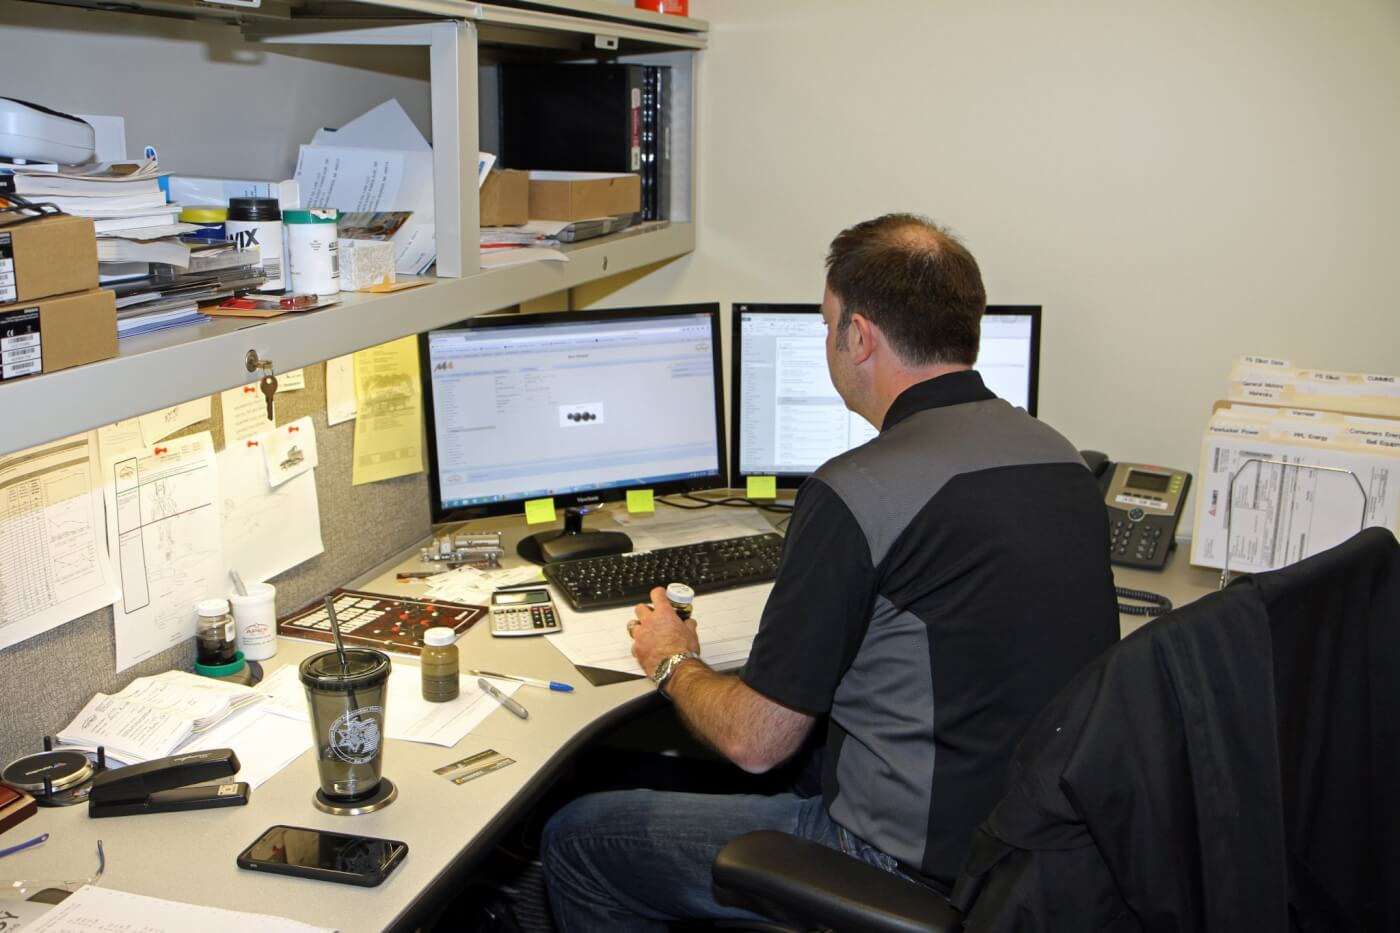 6. Rather than waiting for our samples to arrive via mail, we saved time and hand-delivered both samples to the team at Apex Oil Lab; Jason Rainey labeled and logged each bottle into the Apex system for processing and analysis.